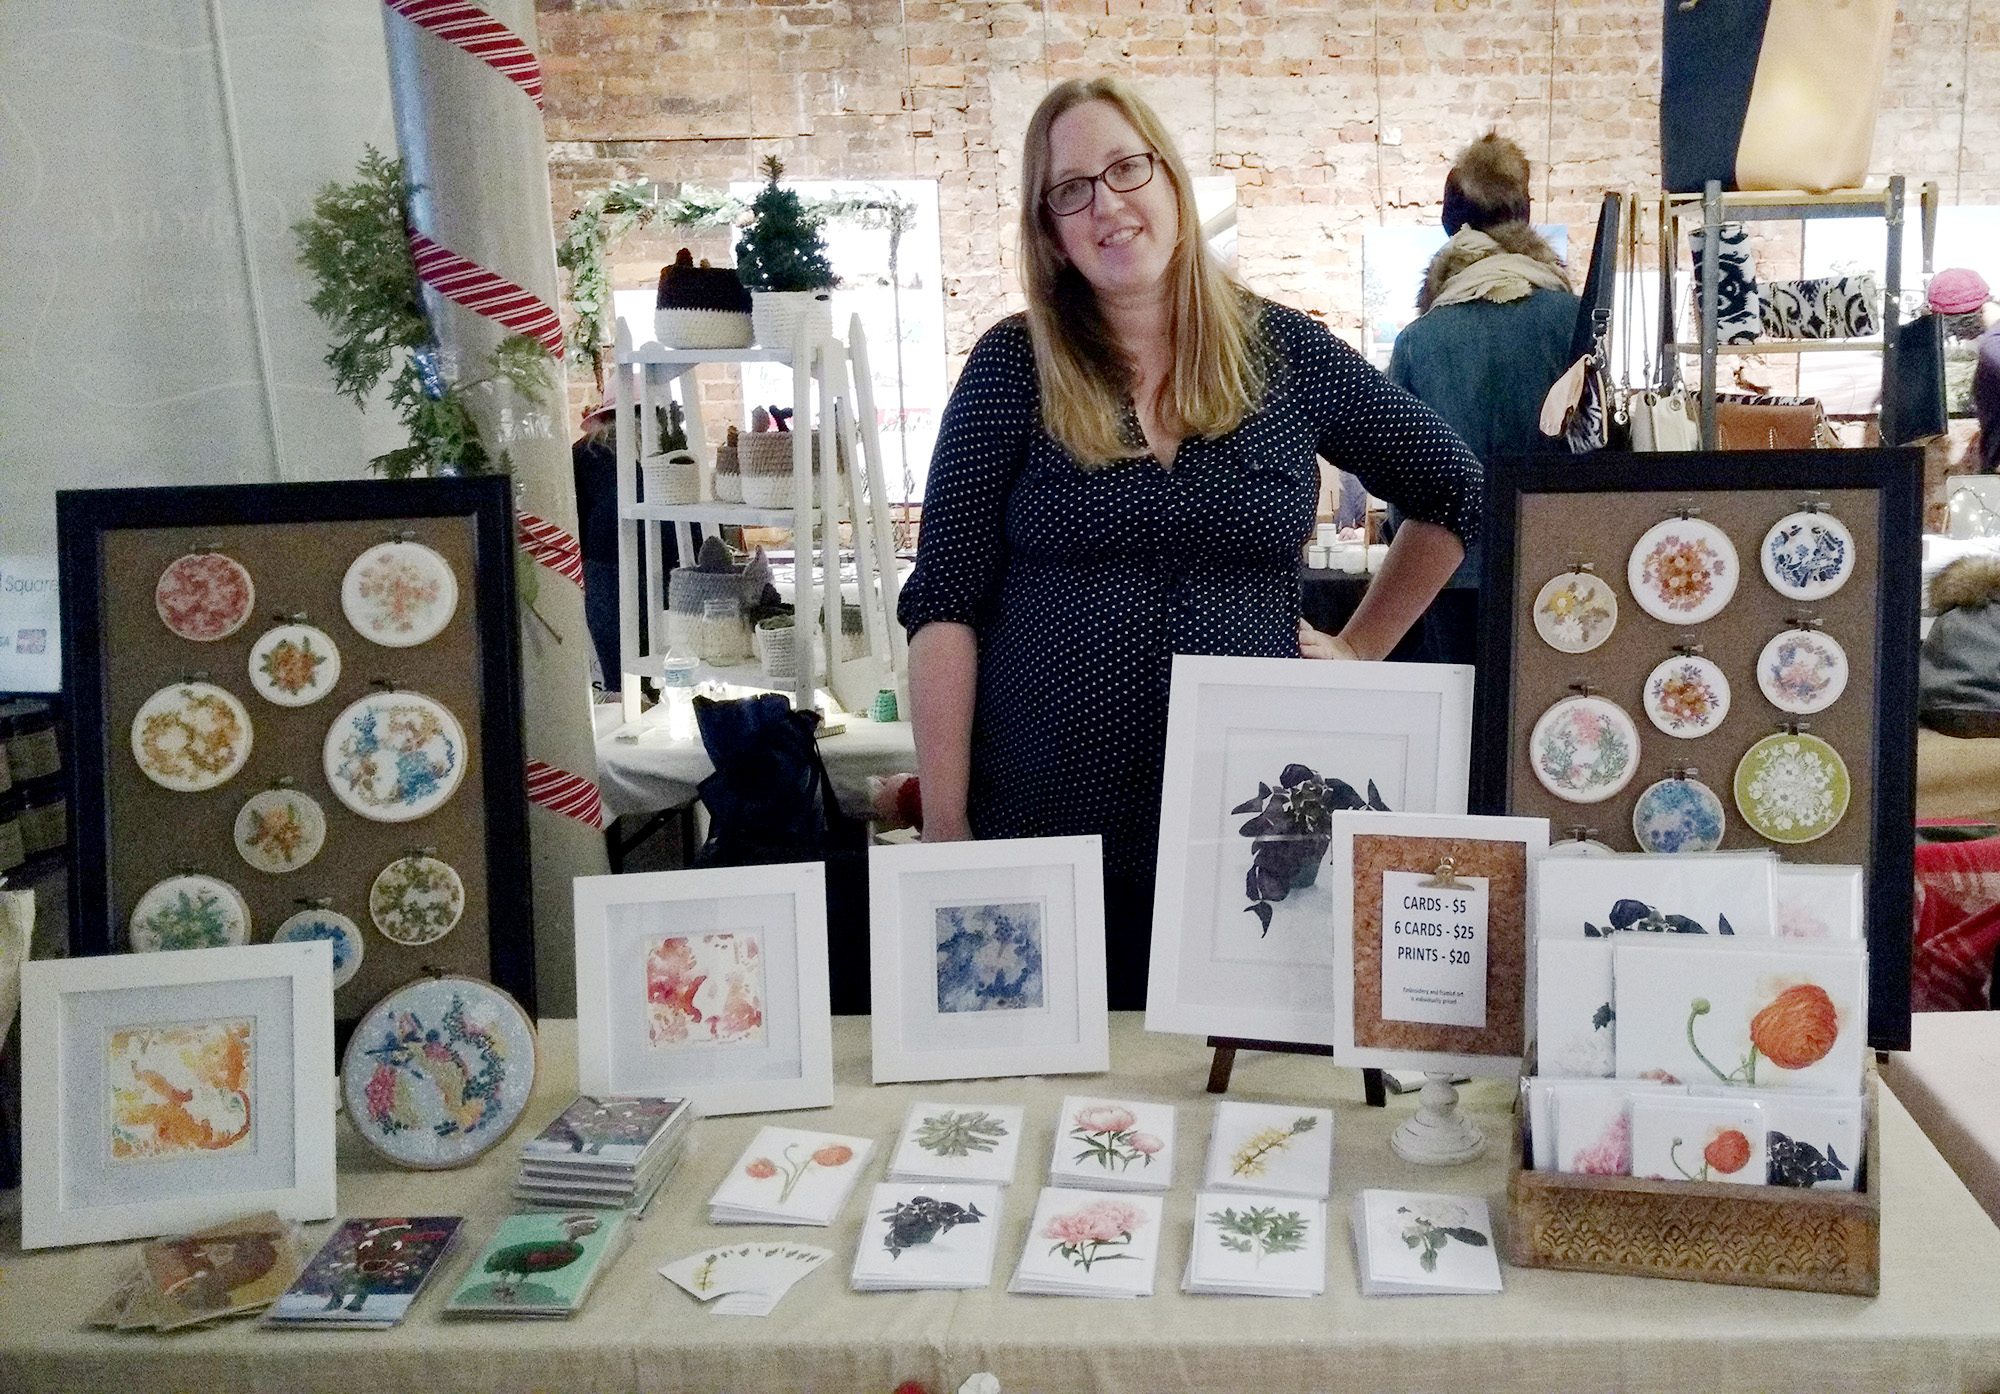 Amanda Farquharson standing behind her table at 'Called to Create' Handmade Market in December 2017